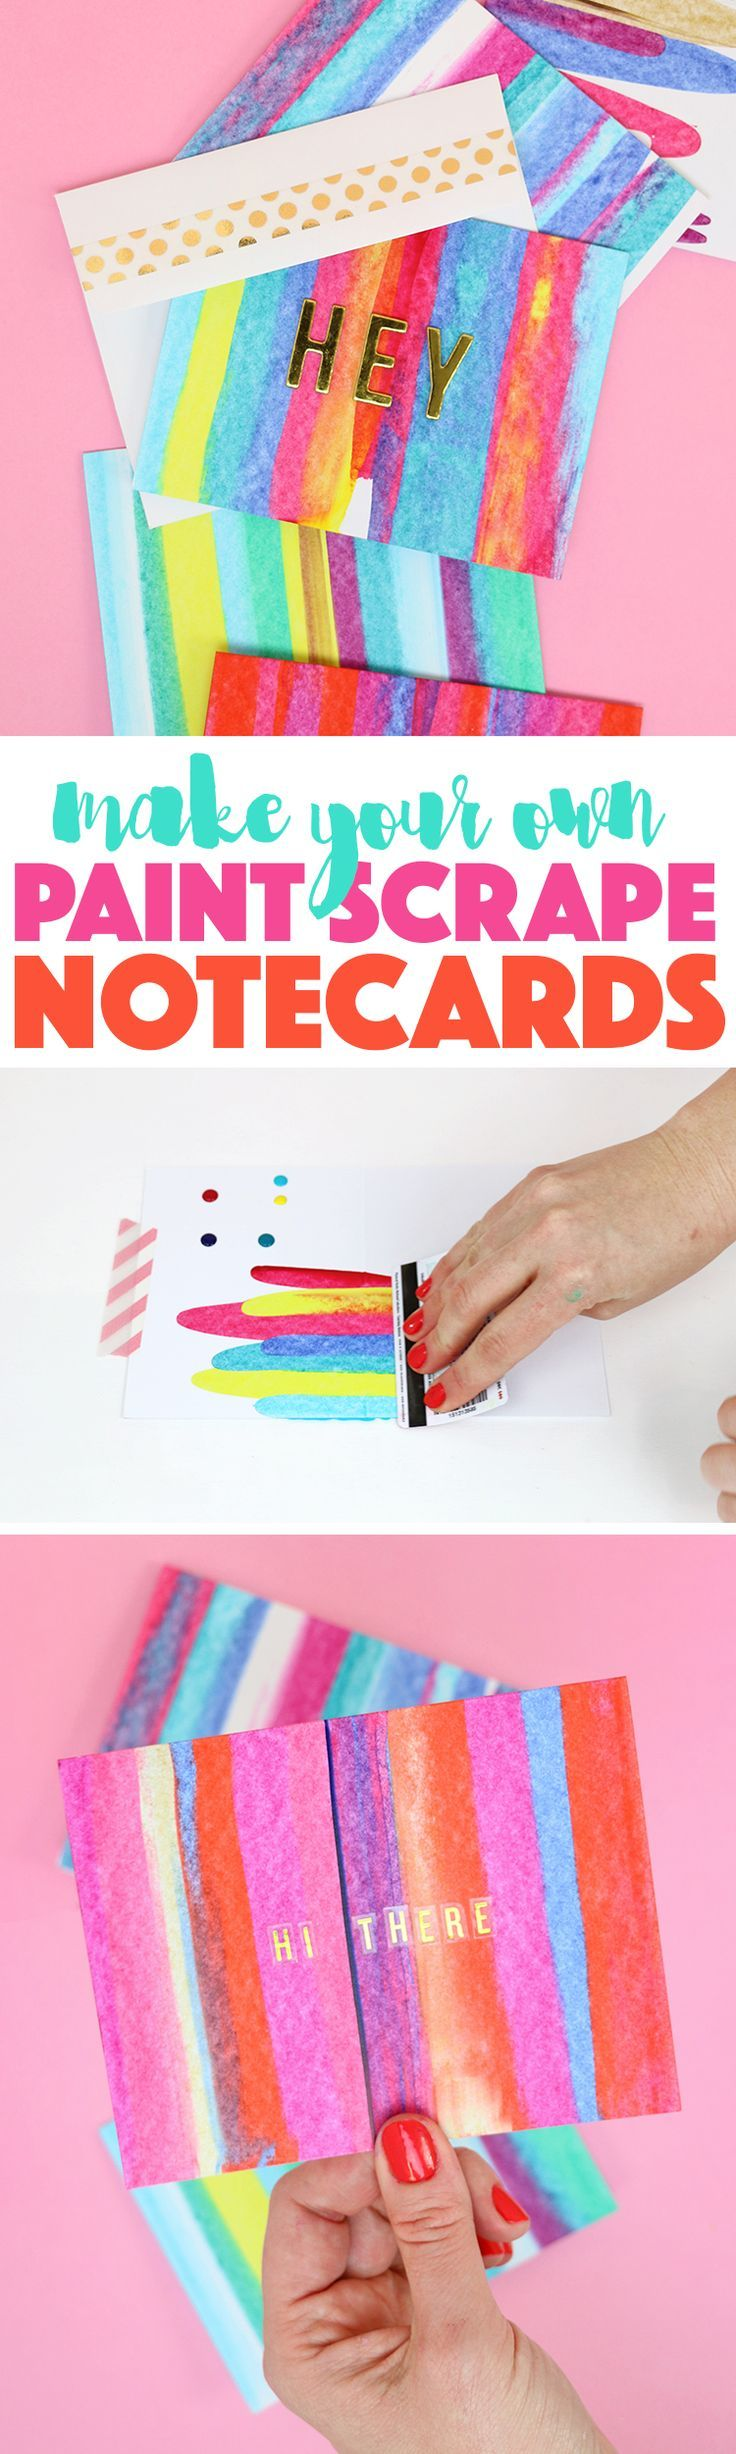 Paint Scrape Notecards - DIY Art Project Idea - Persia Lou